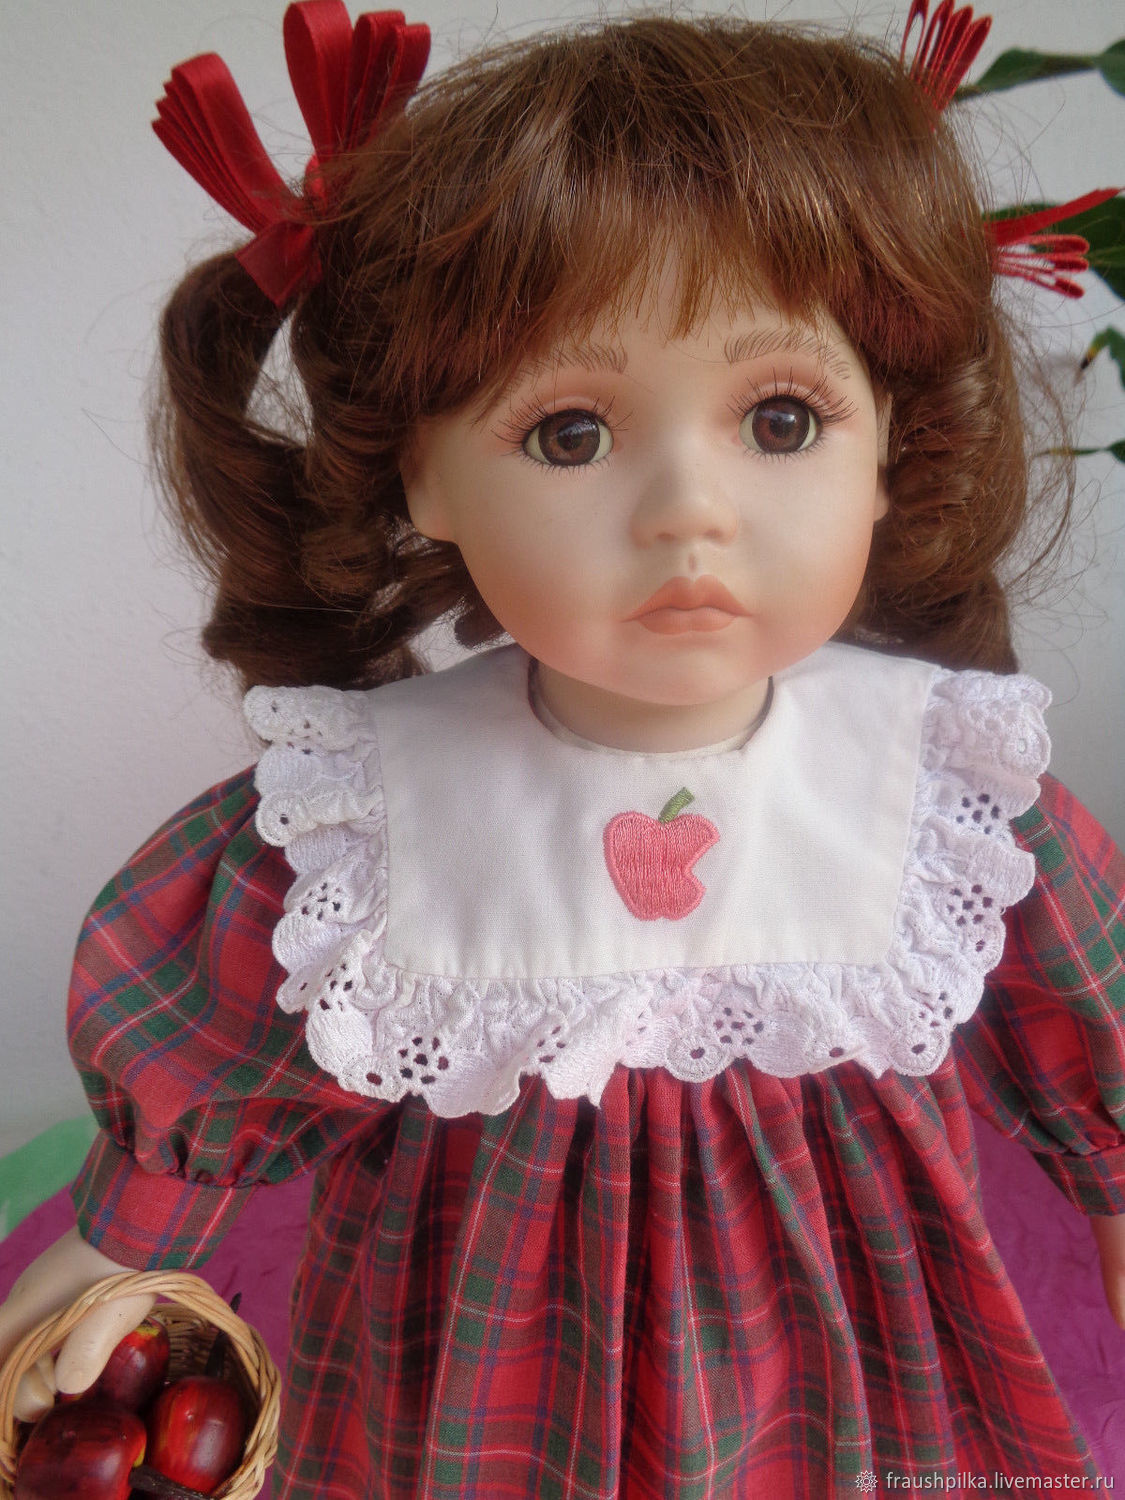 Collectible porcelain doll from Anne Timmermann, Dolls, Kempten, Фото №1